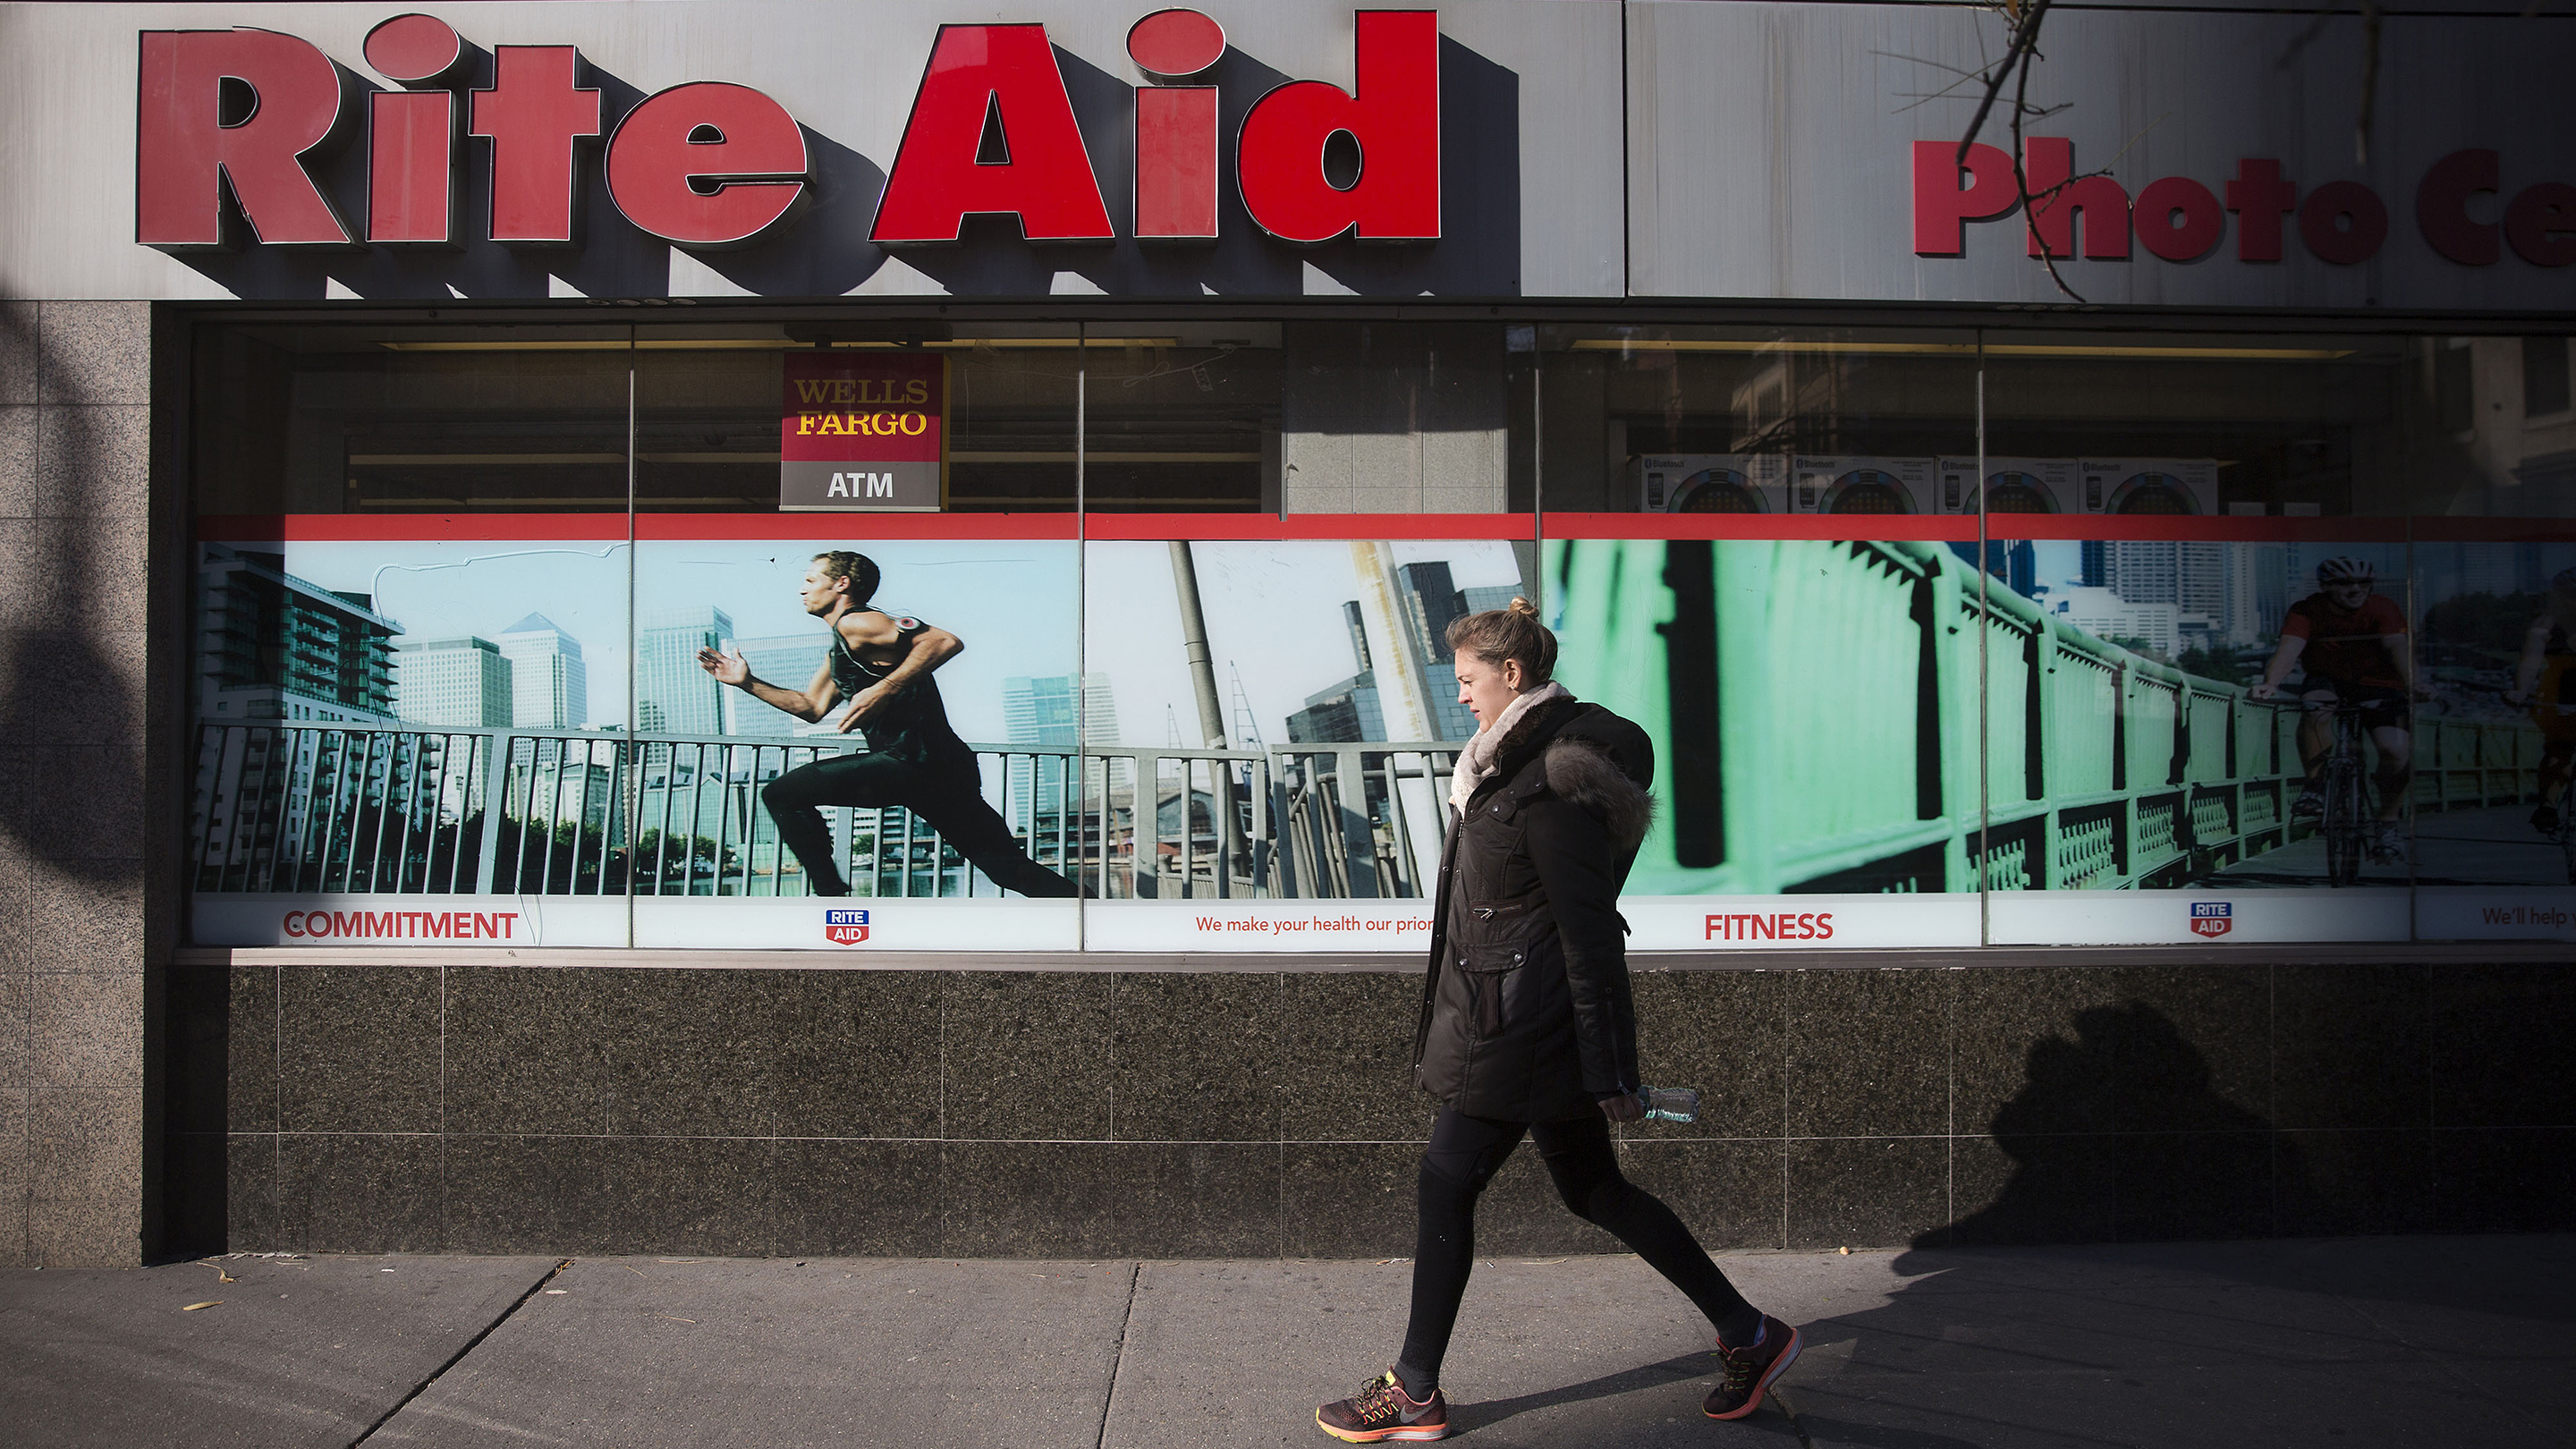 A Rite Aid Corp. Store Ahead Of Earnings Figures